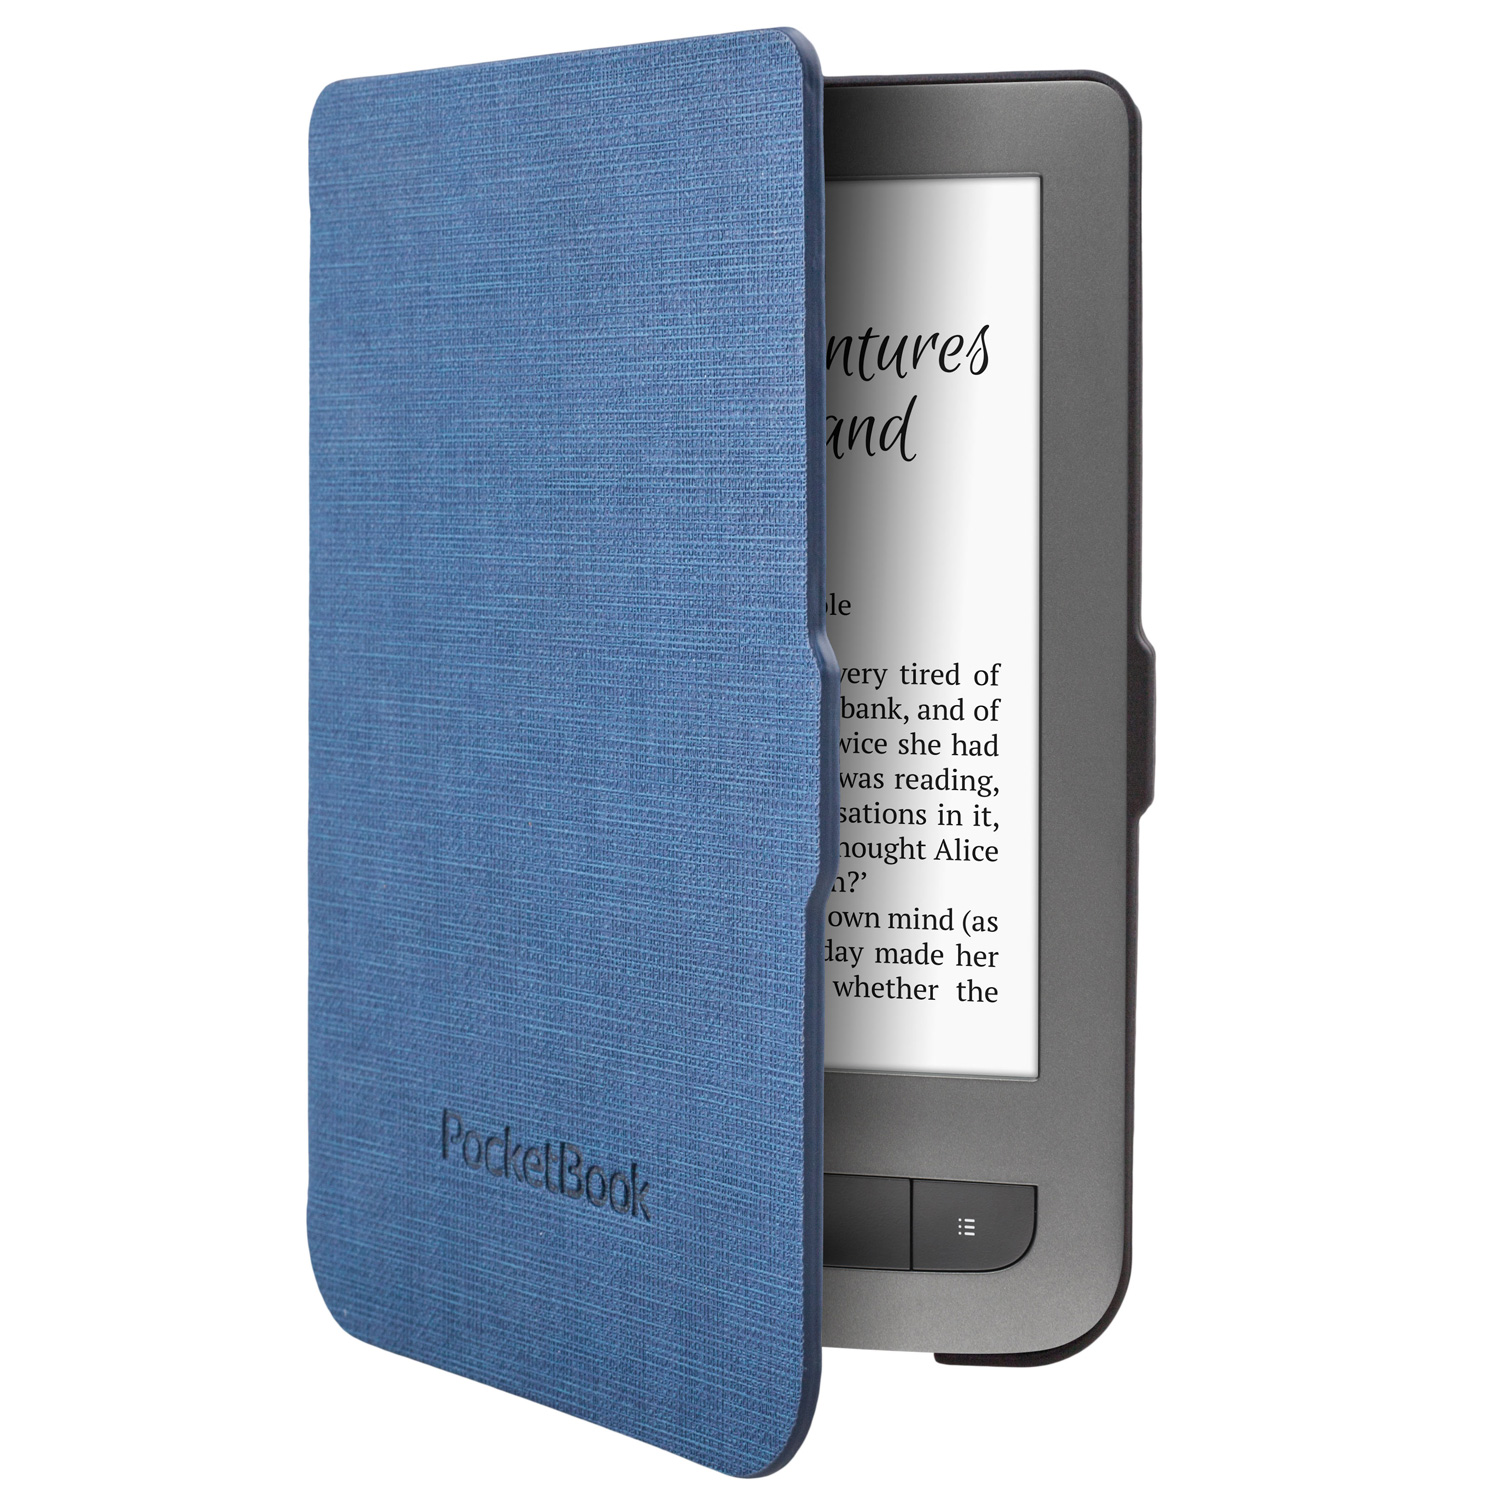 hq-Cover-Shell-Muted-Blue-Black-1